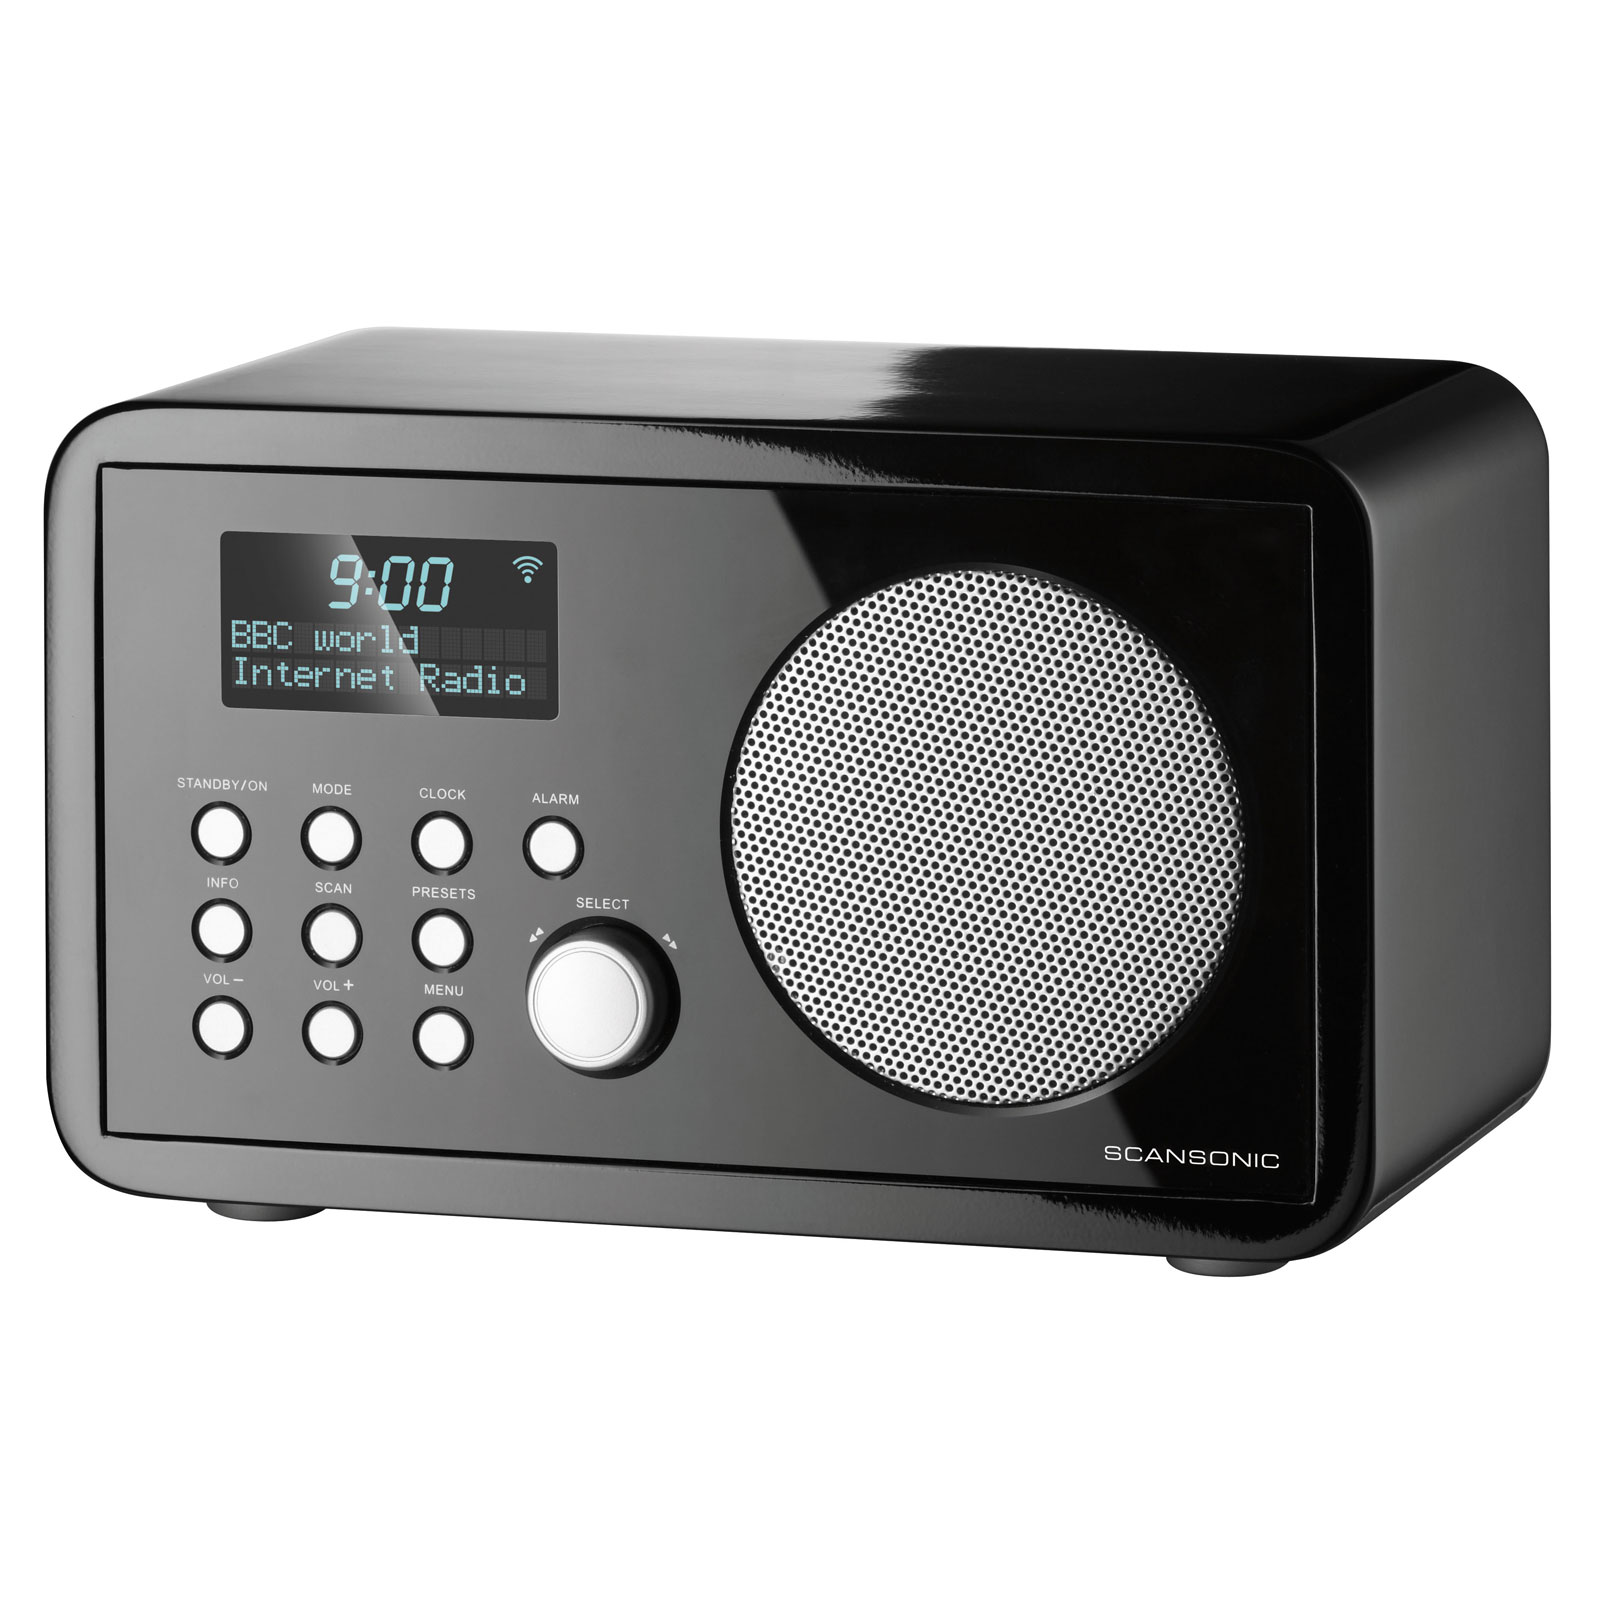 scansonic in210 noir radio radio r veil scansonic sur ldlc. Black Bedroom Furniture Sets. Home Design Ideas